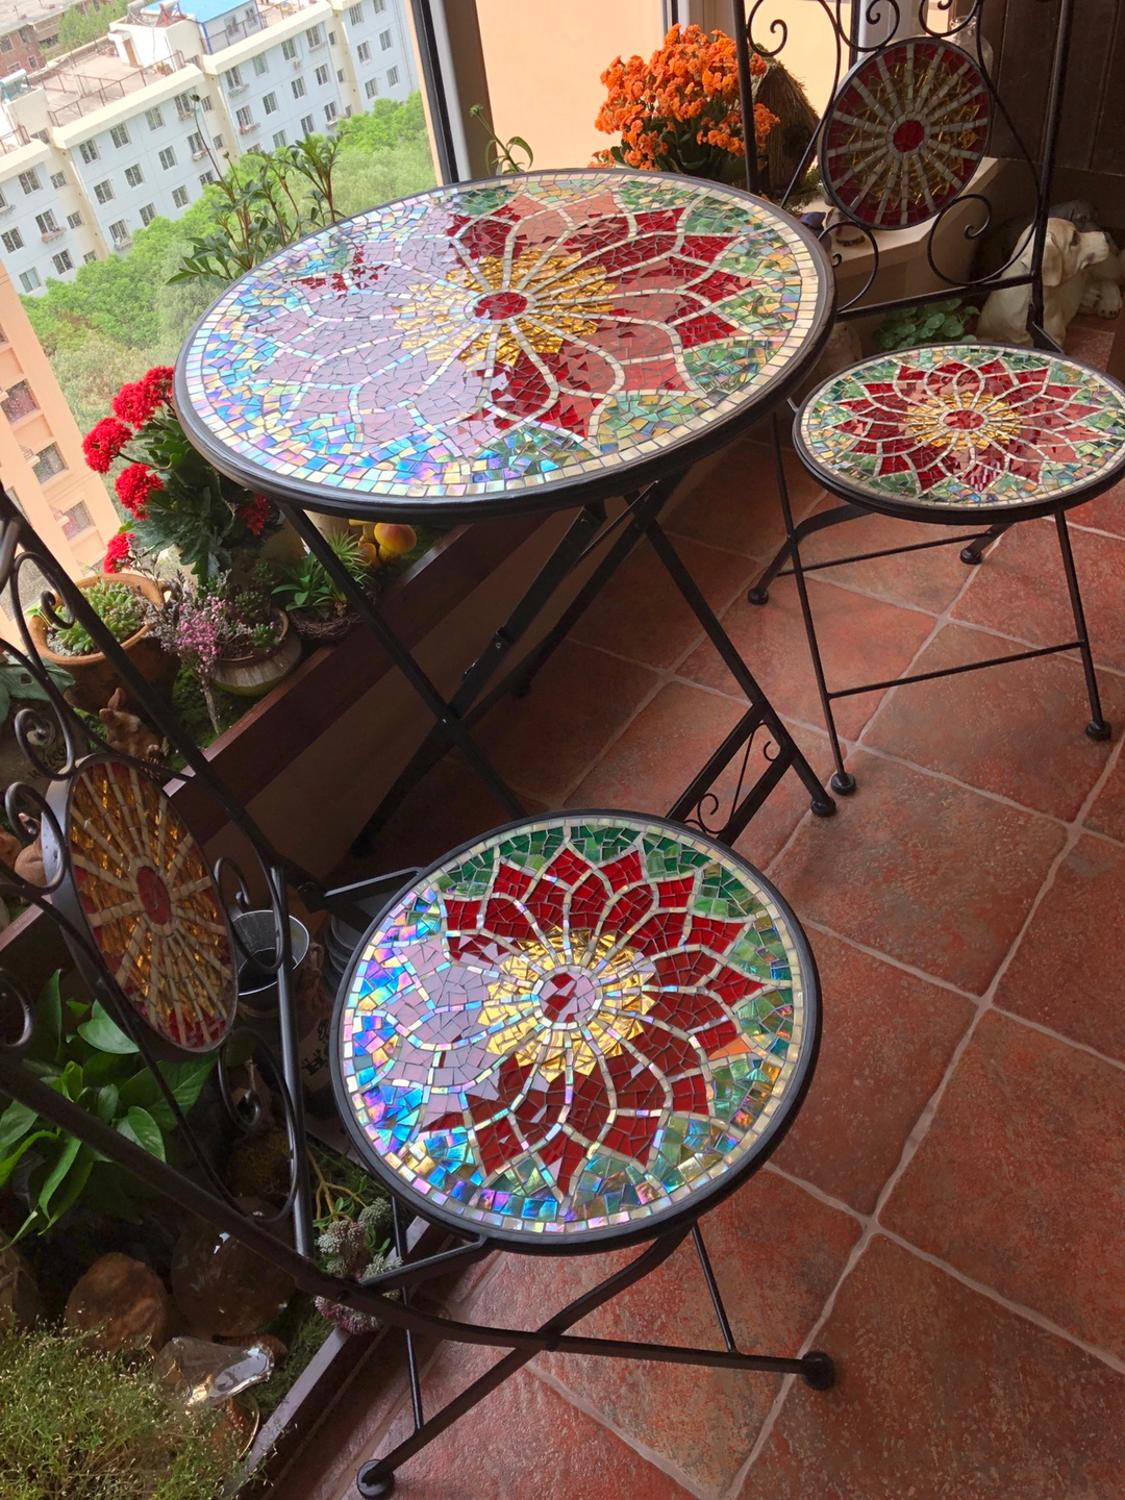 Mosaic Table Outdoor Indoor Use Of